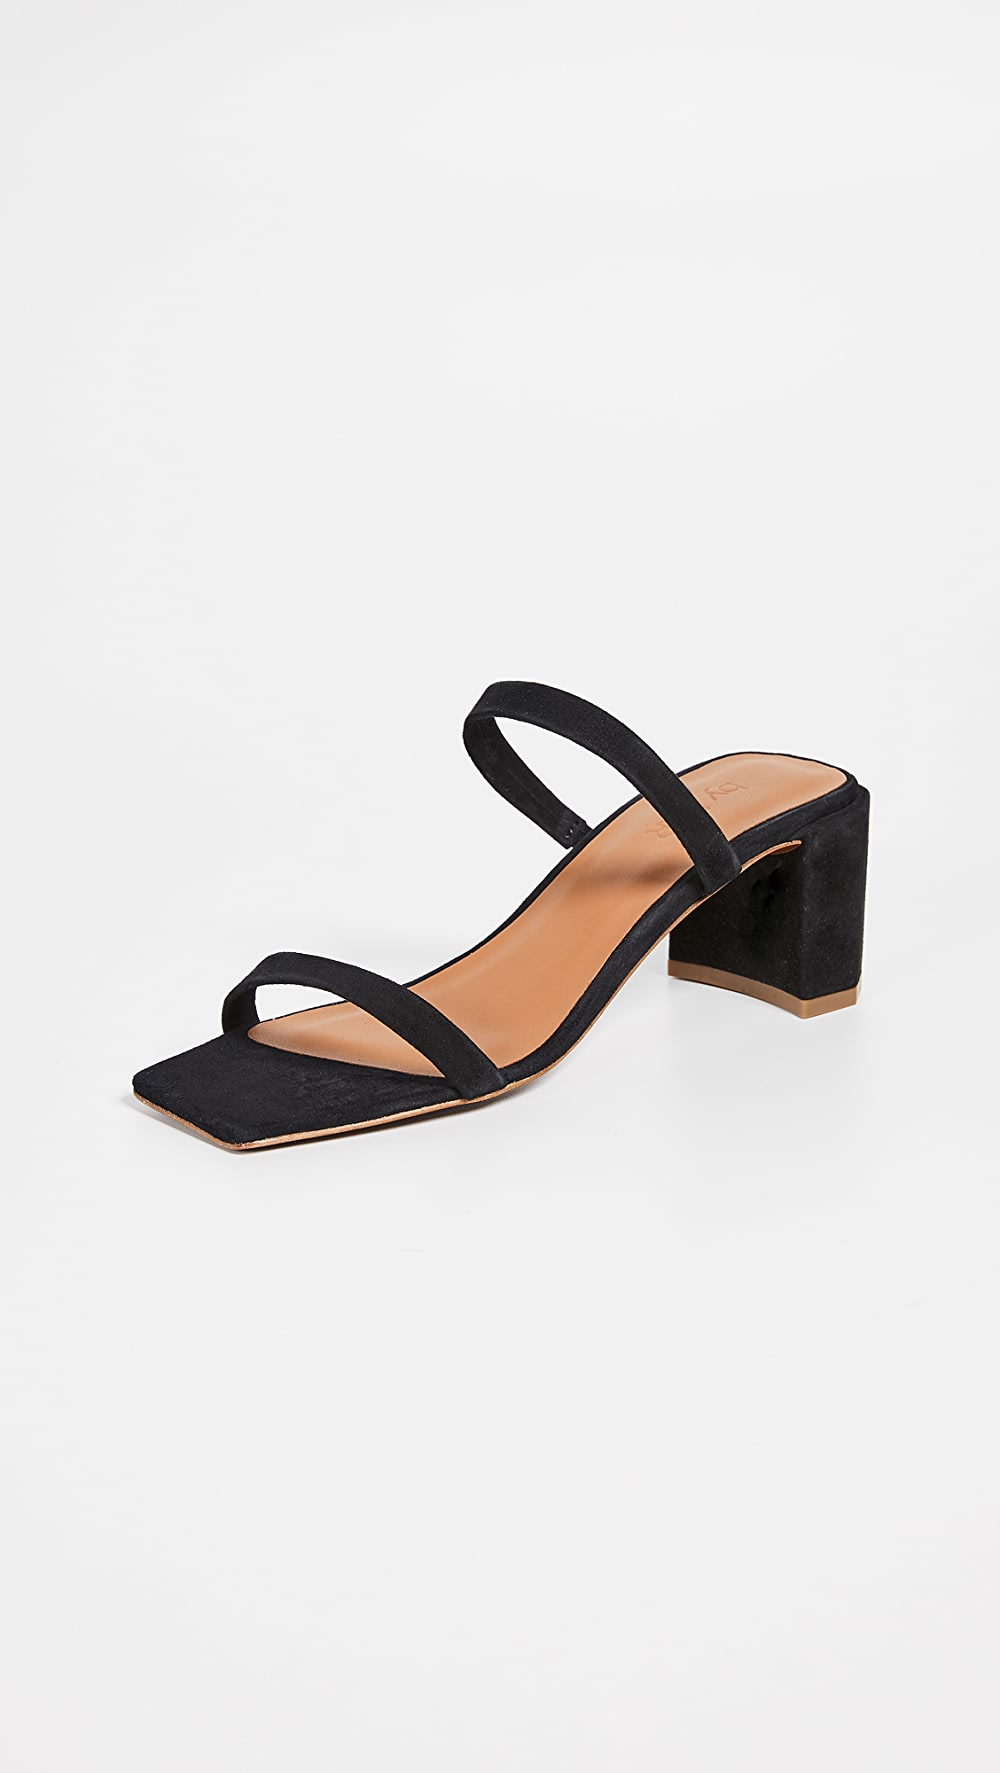 Fashion Style By Far - Tanya Sandals Making Things Convenient For The People